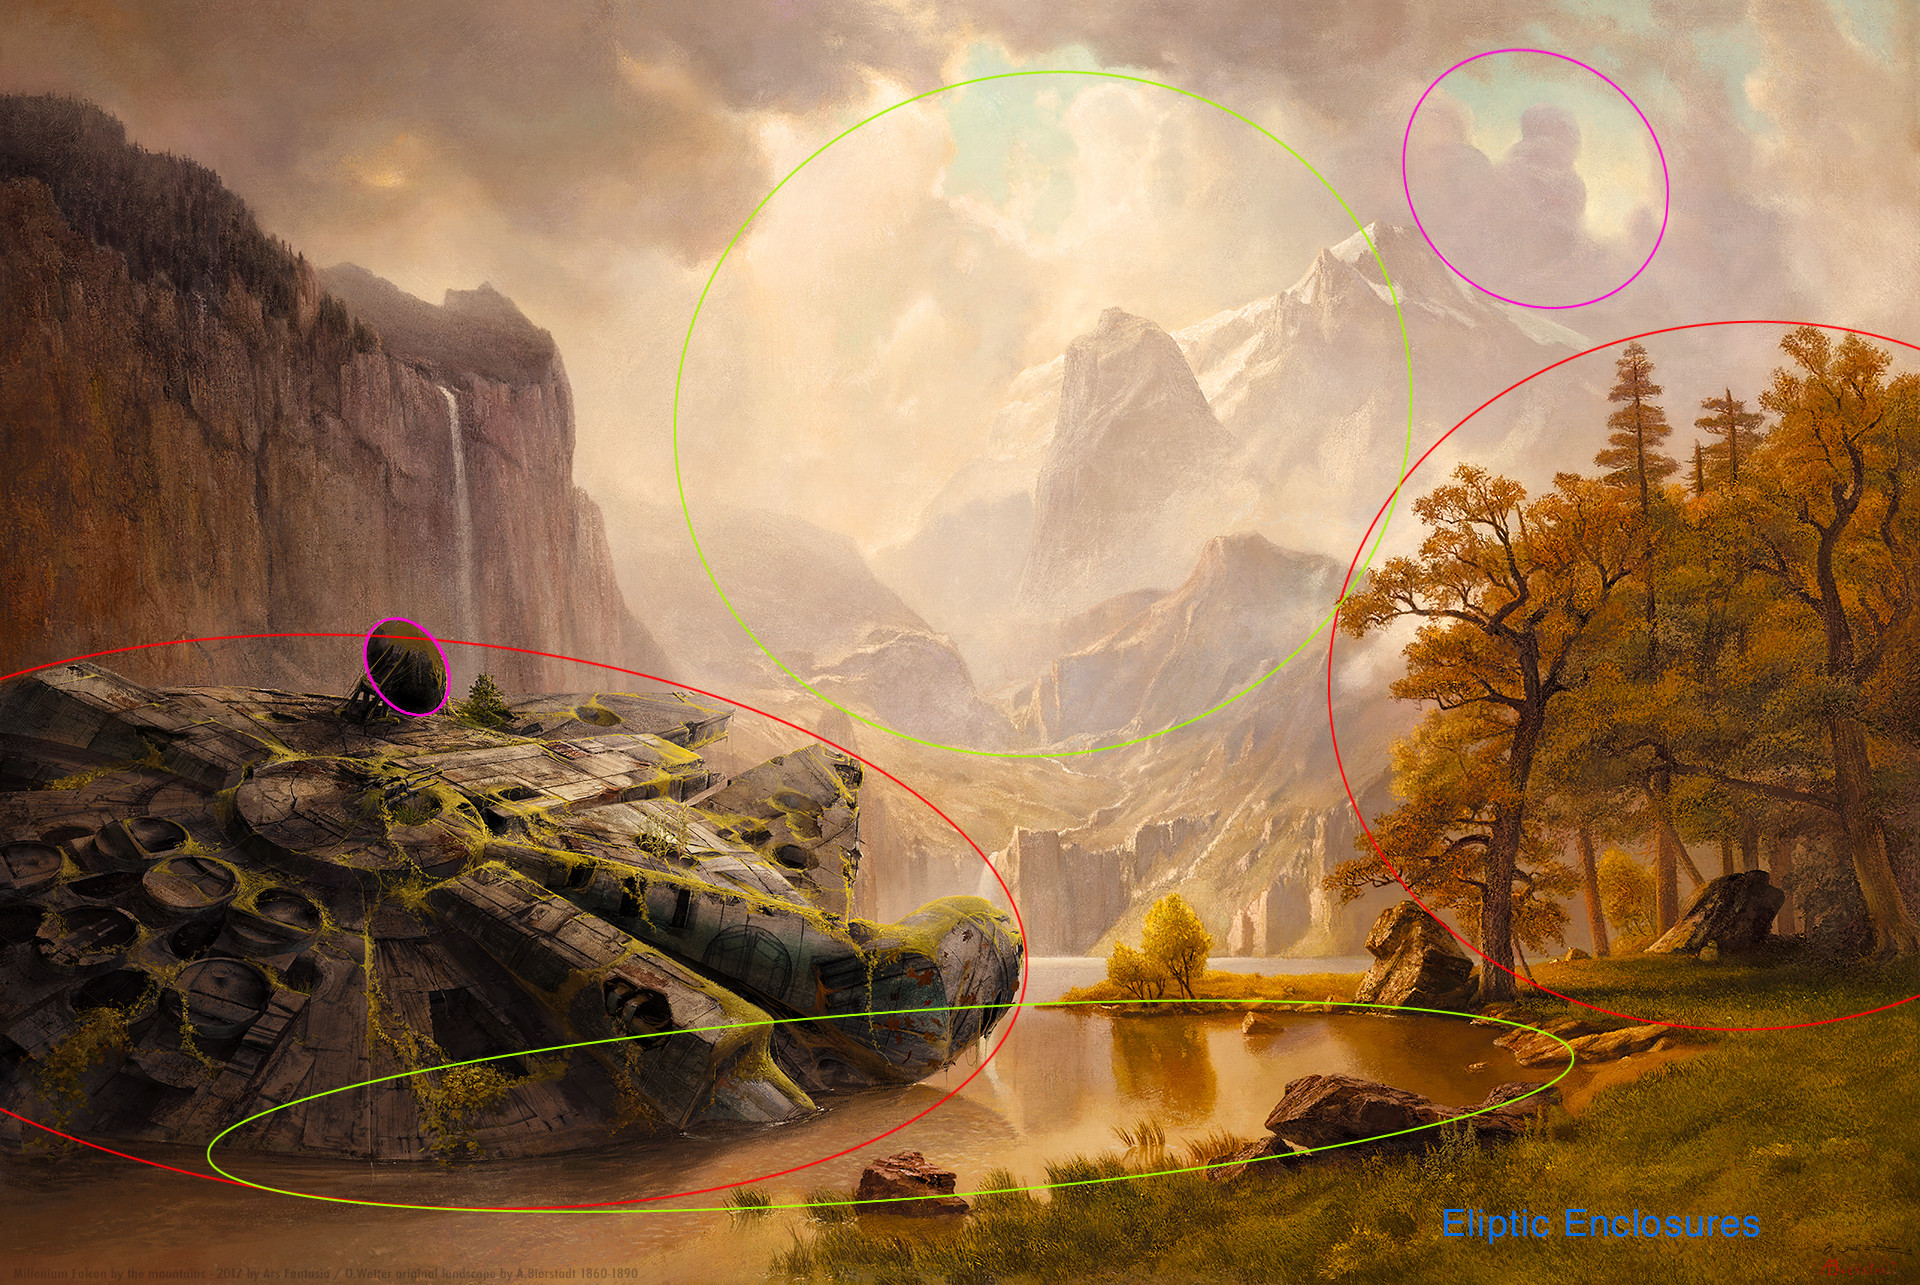 Oliver wetter composition findings ellipses 1920x1200px watermarked web abandoned millenium falcon at sierra nevada